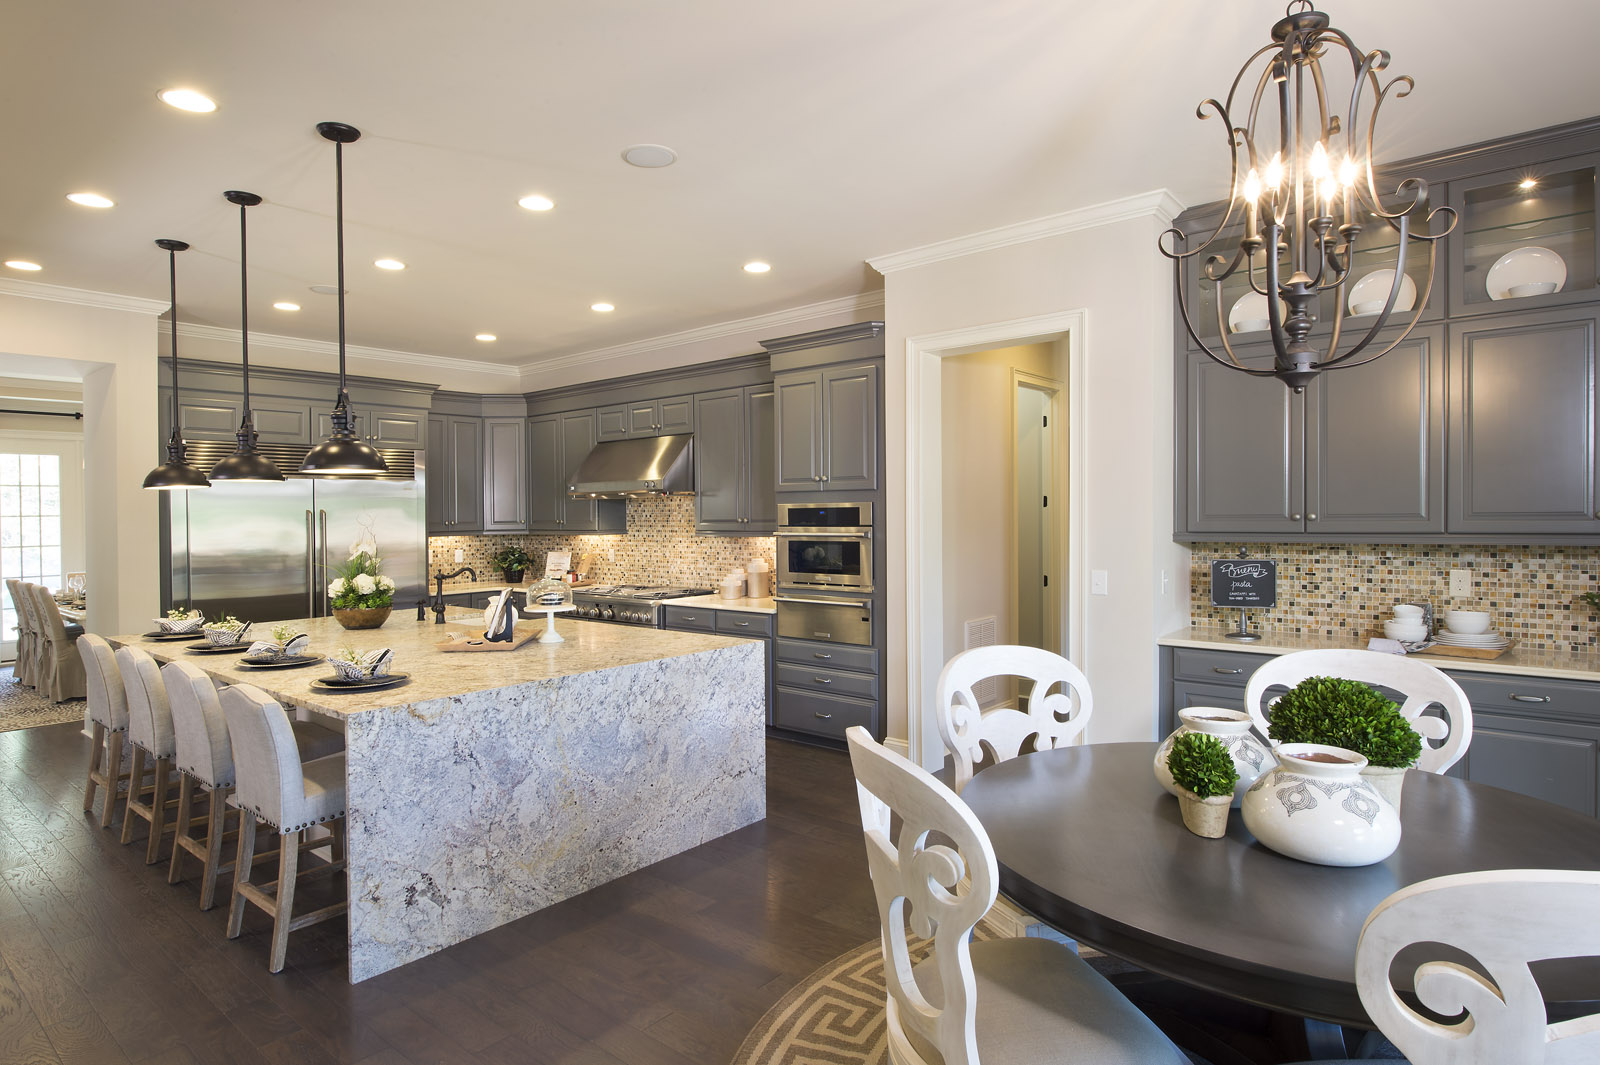 beautiful luxury model homes 4 grayson kitchen at atherton modern outdoor living by shea homes. Black Bedroom Furniture Sets. Home Design Ideas